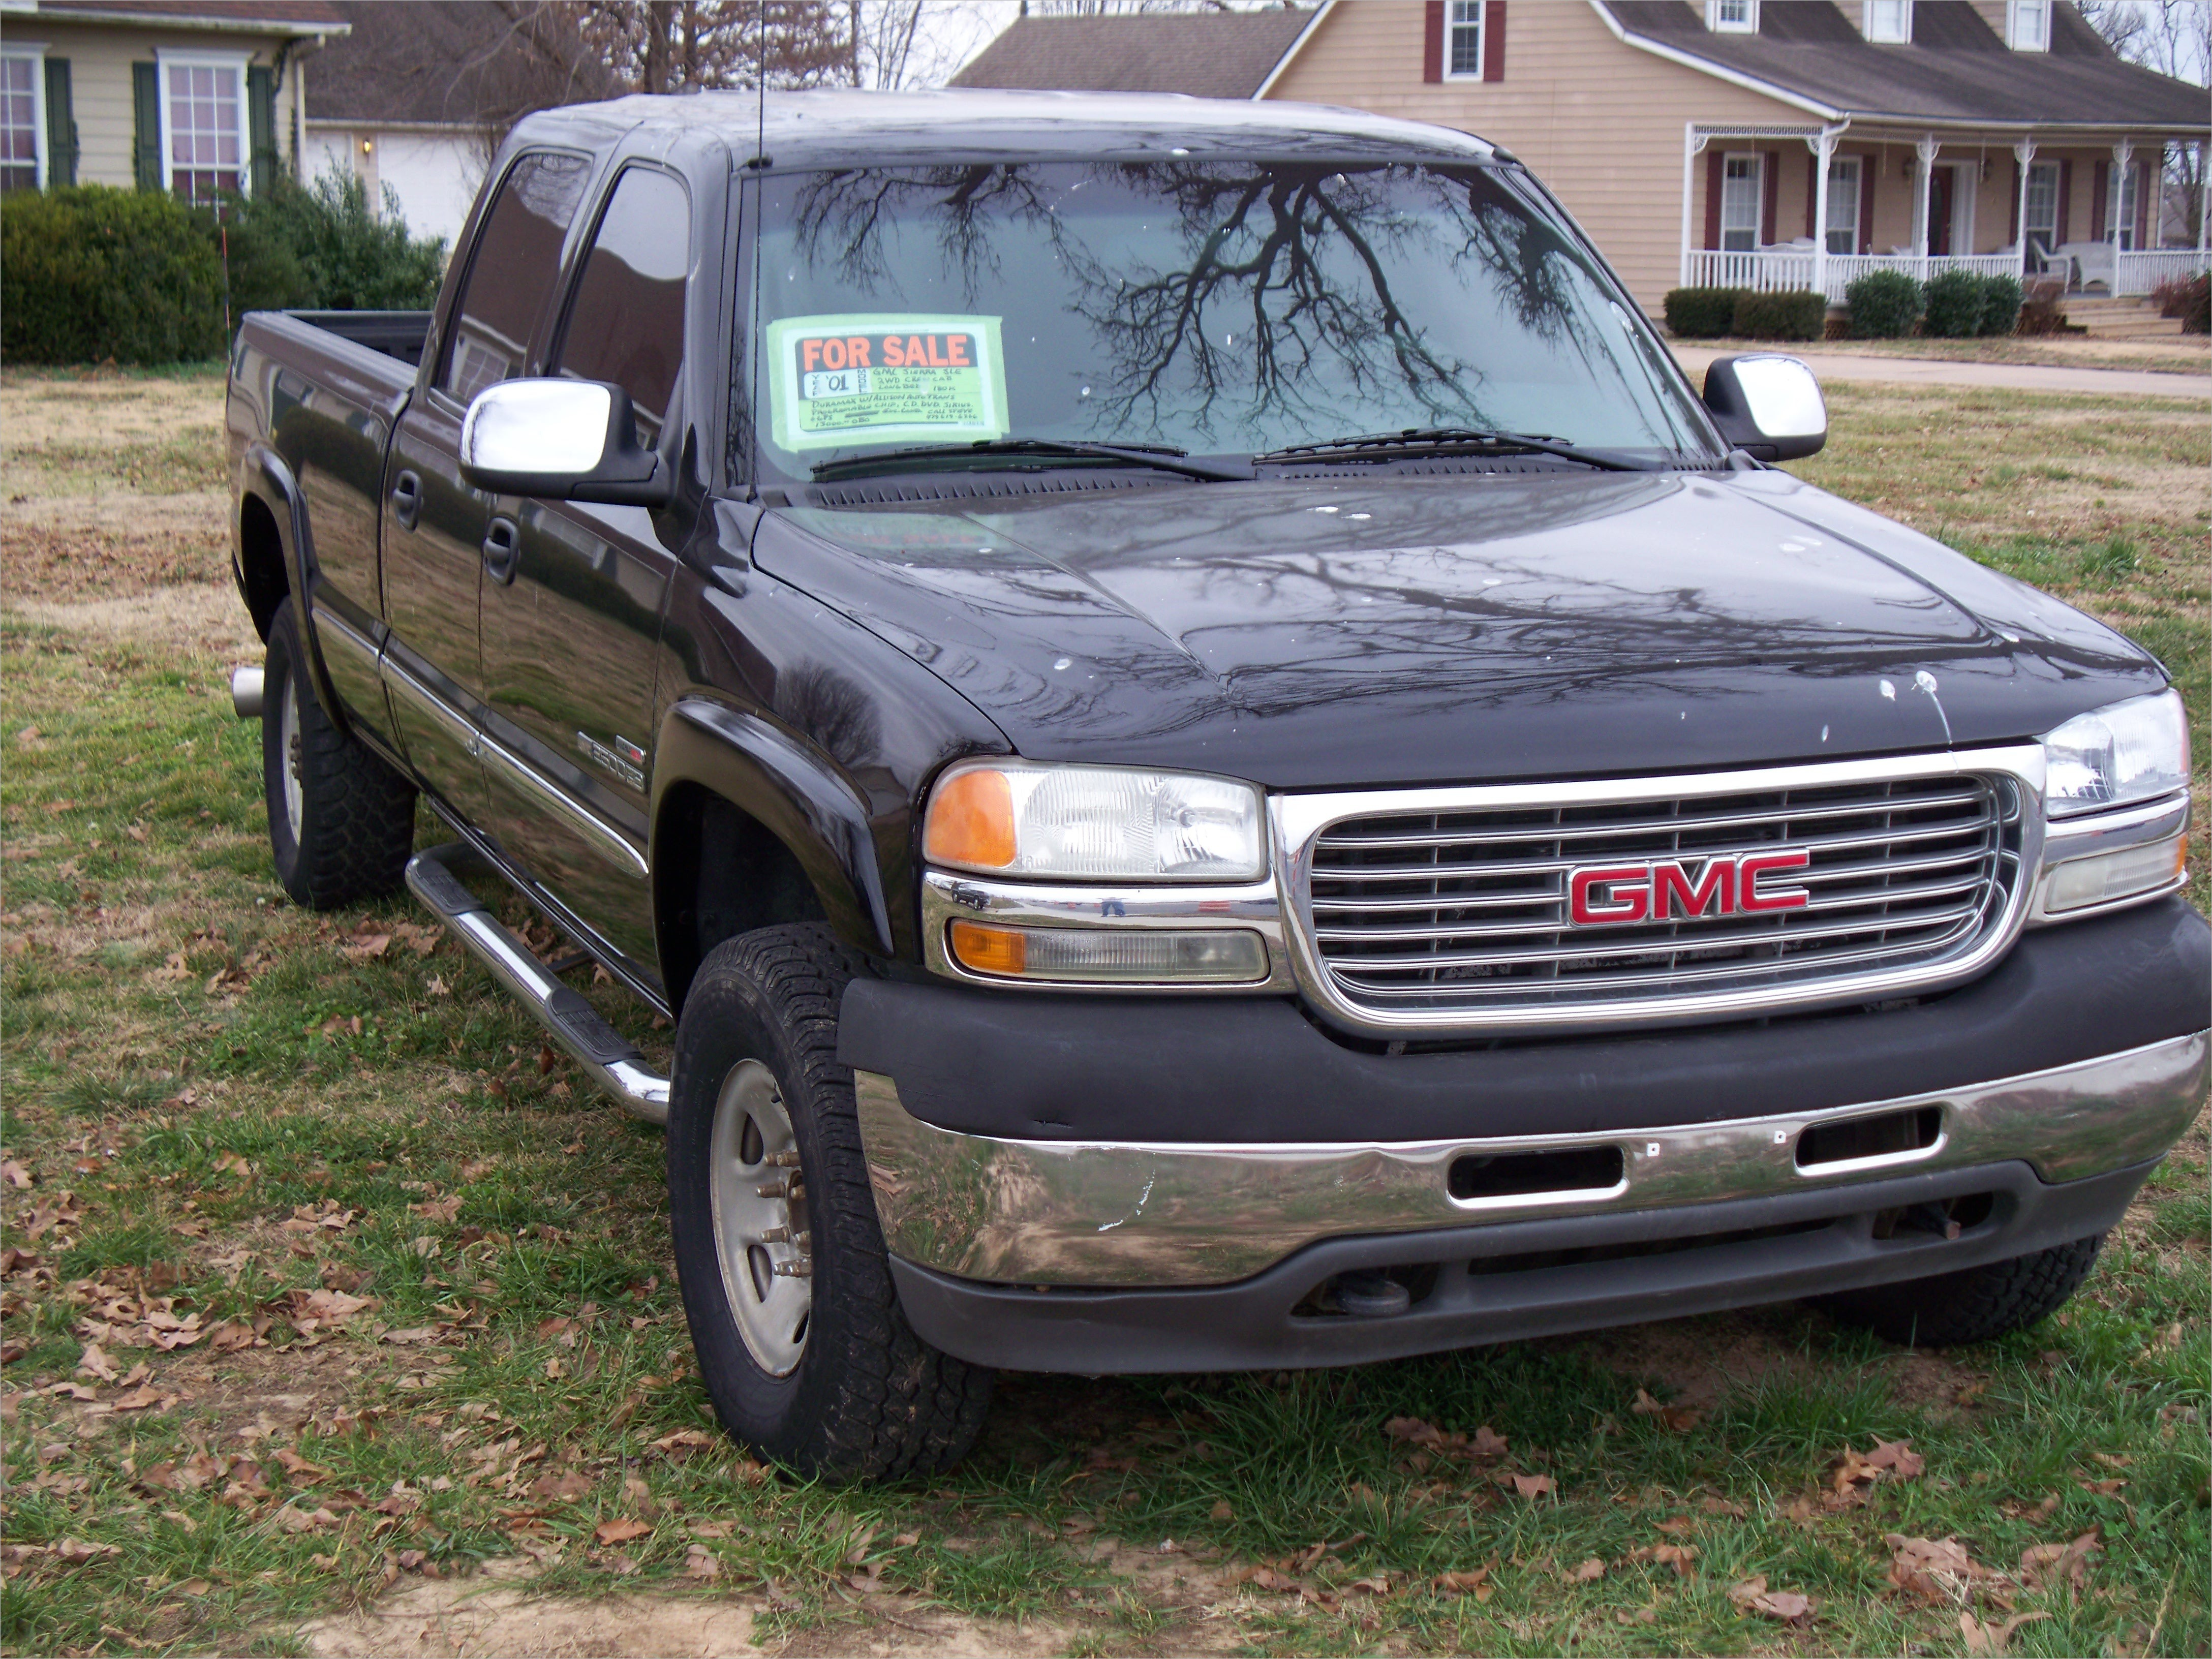 Dallas Craigslist Used Cars By Owner >> Used Cars For Sale Dallas Craigslist All About Chevrolet